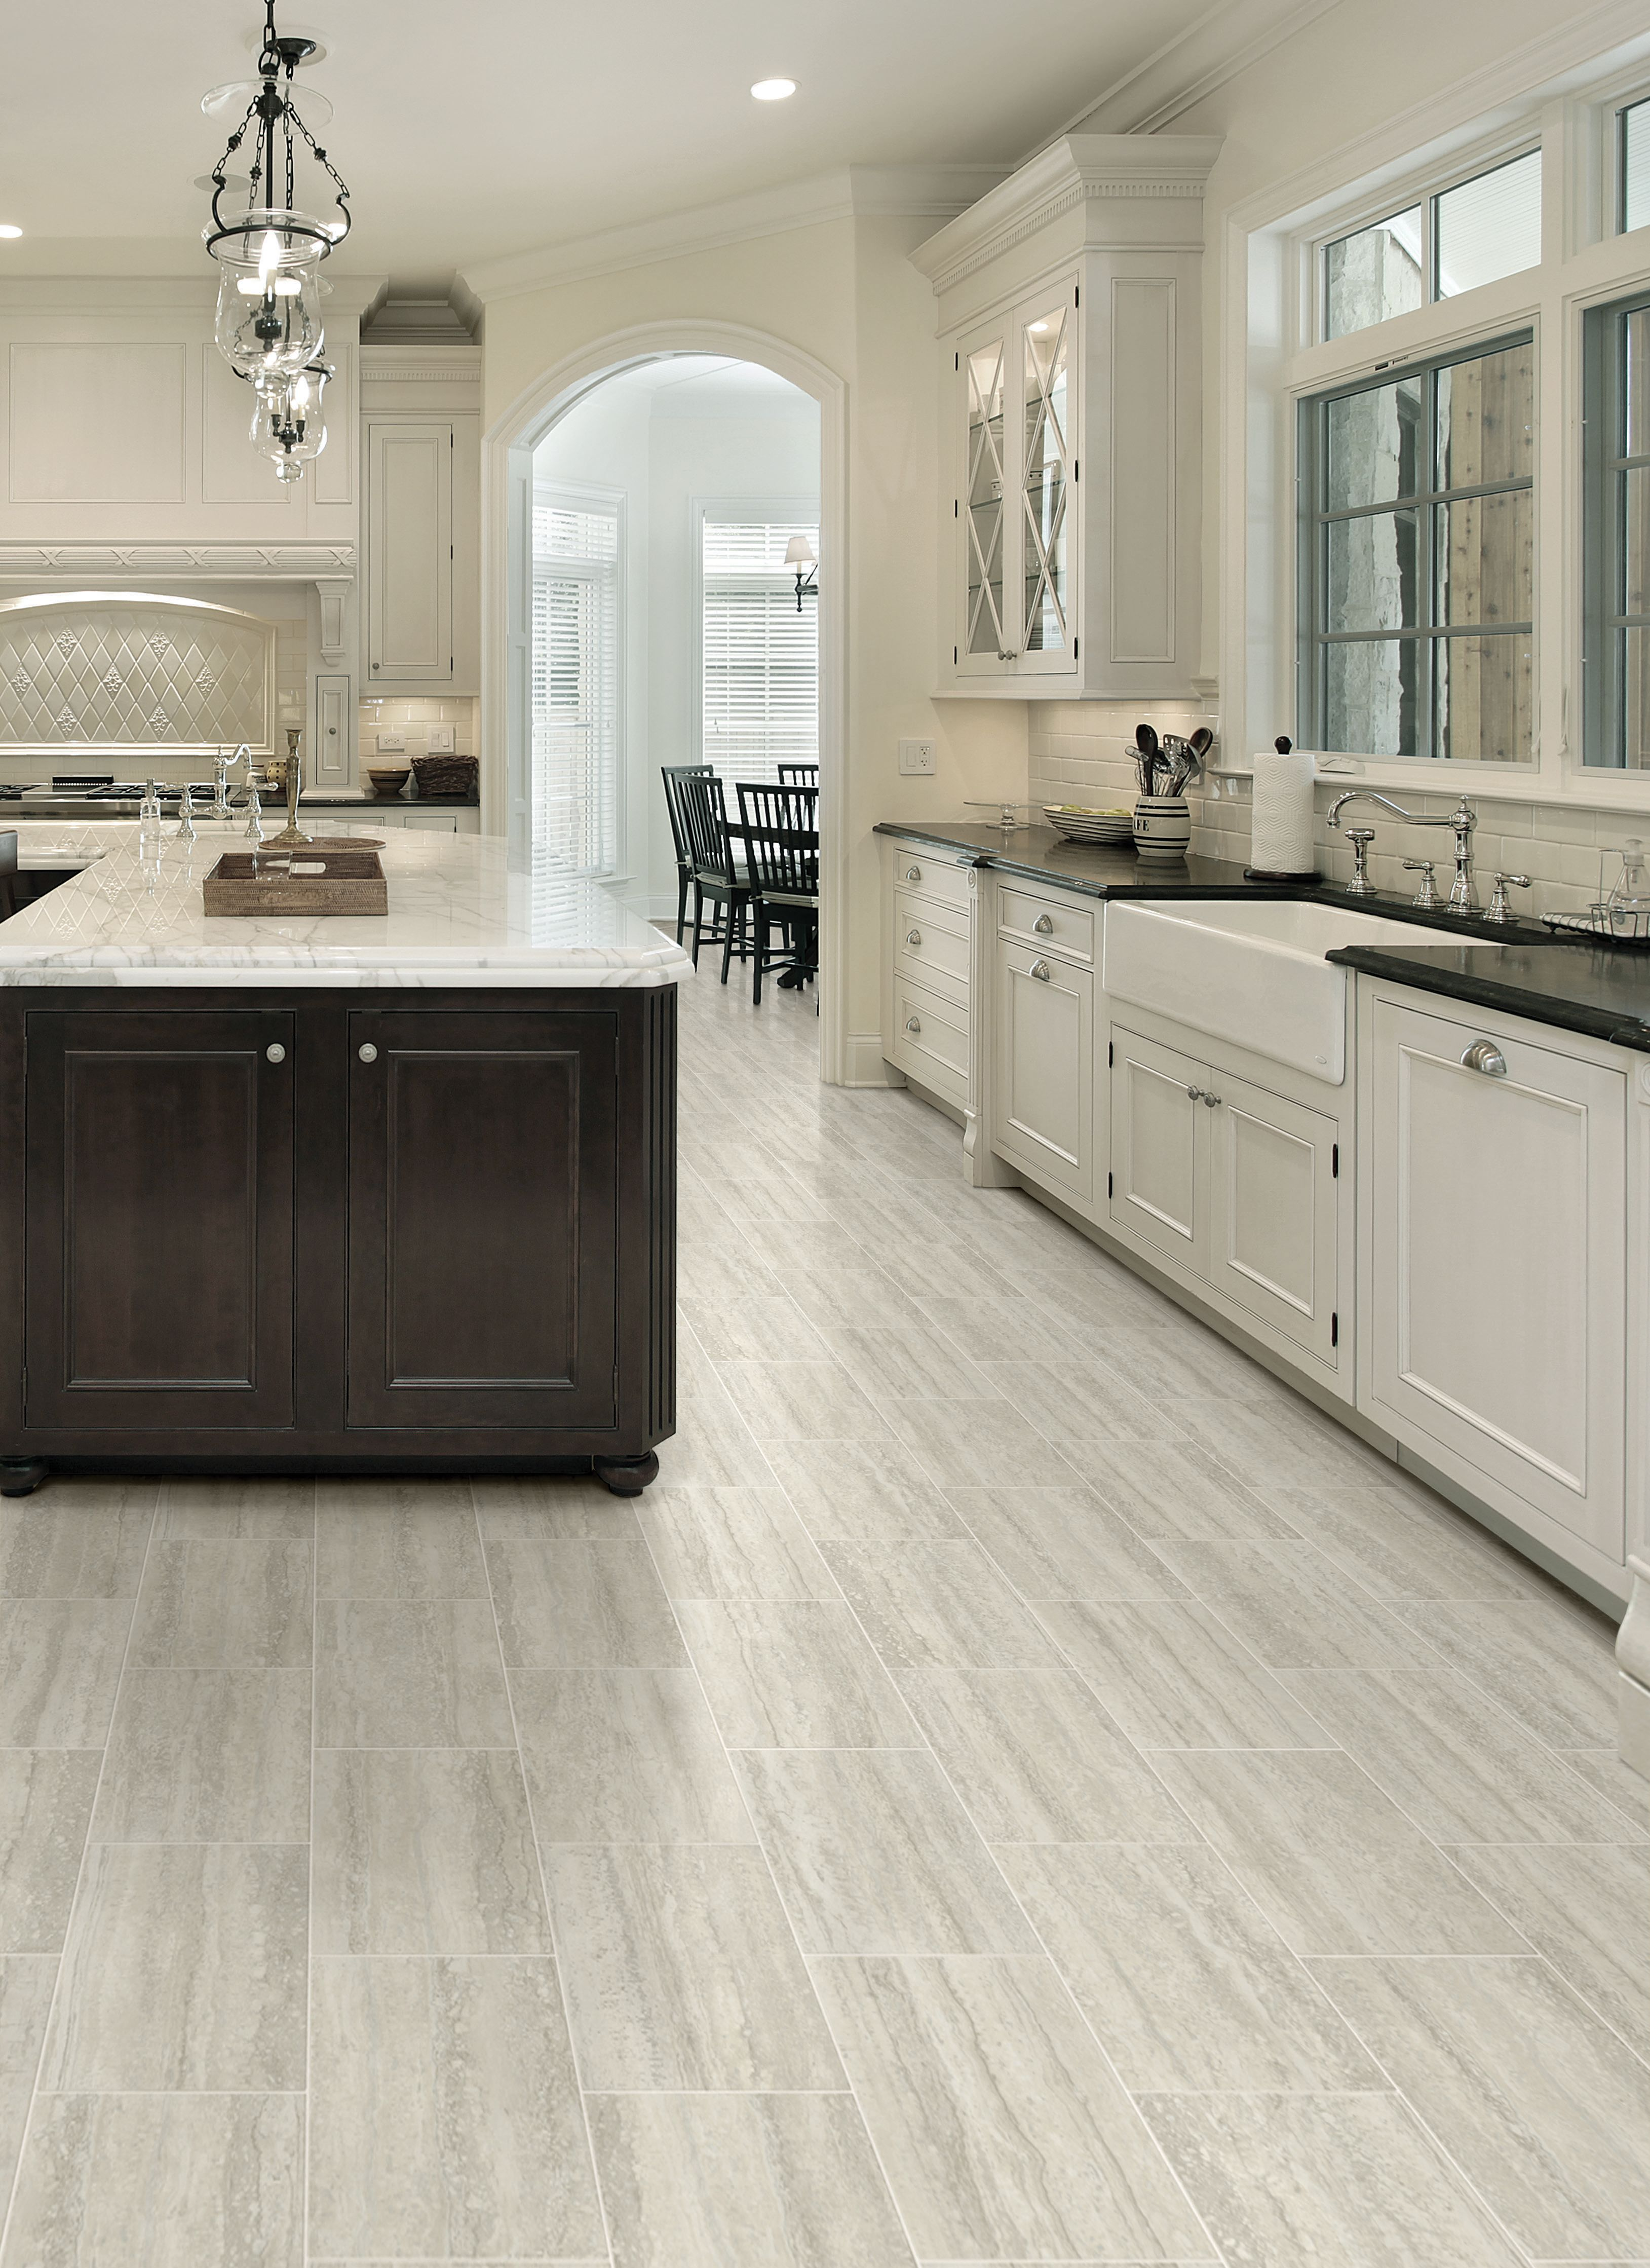 Modernize your kitchen with durable and comfortable sheet vinyl.